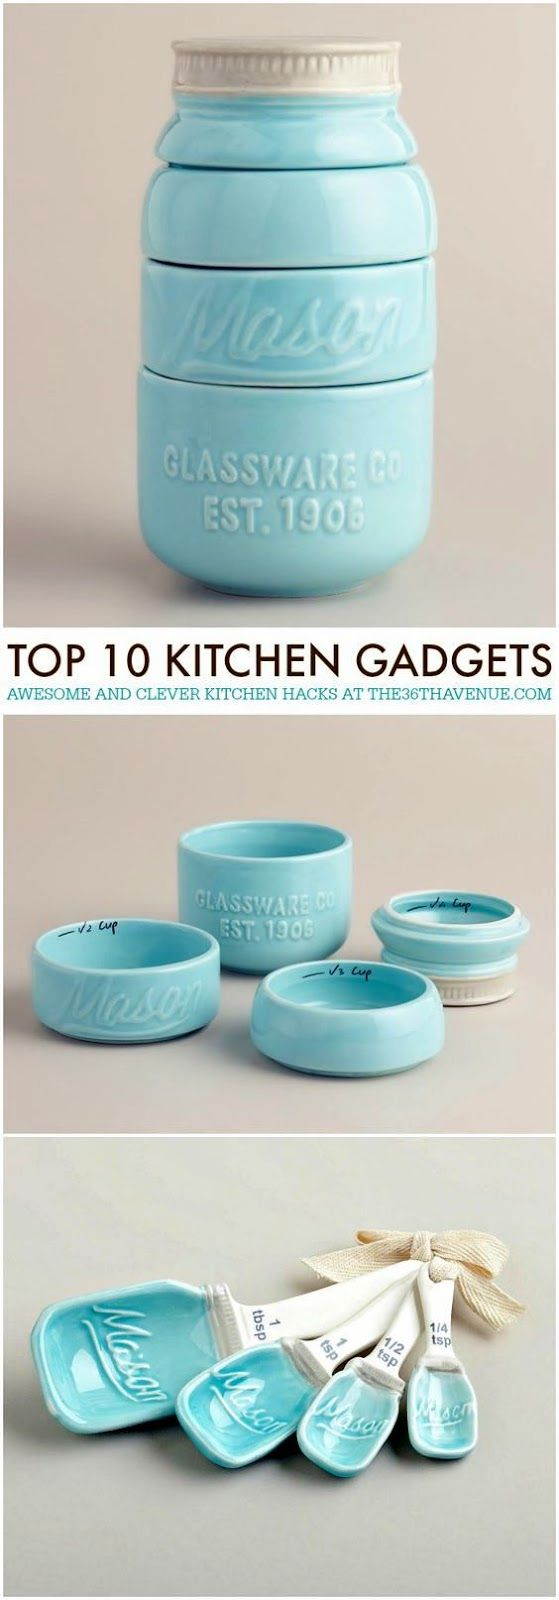 best interesting household items images on pinterest cooking